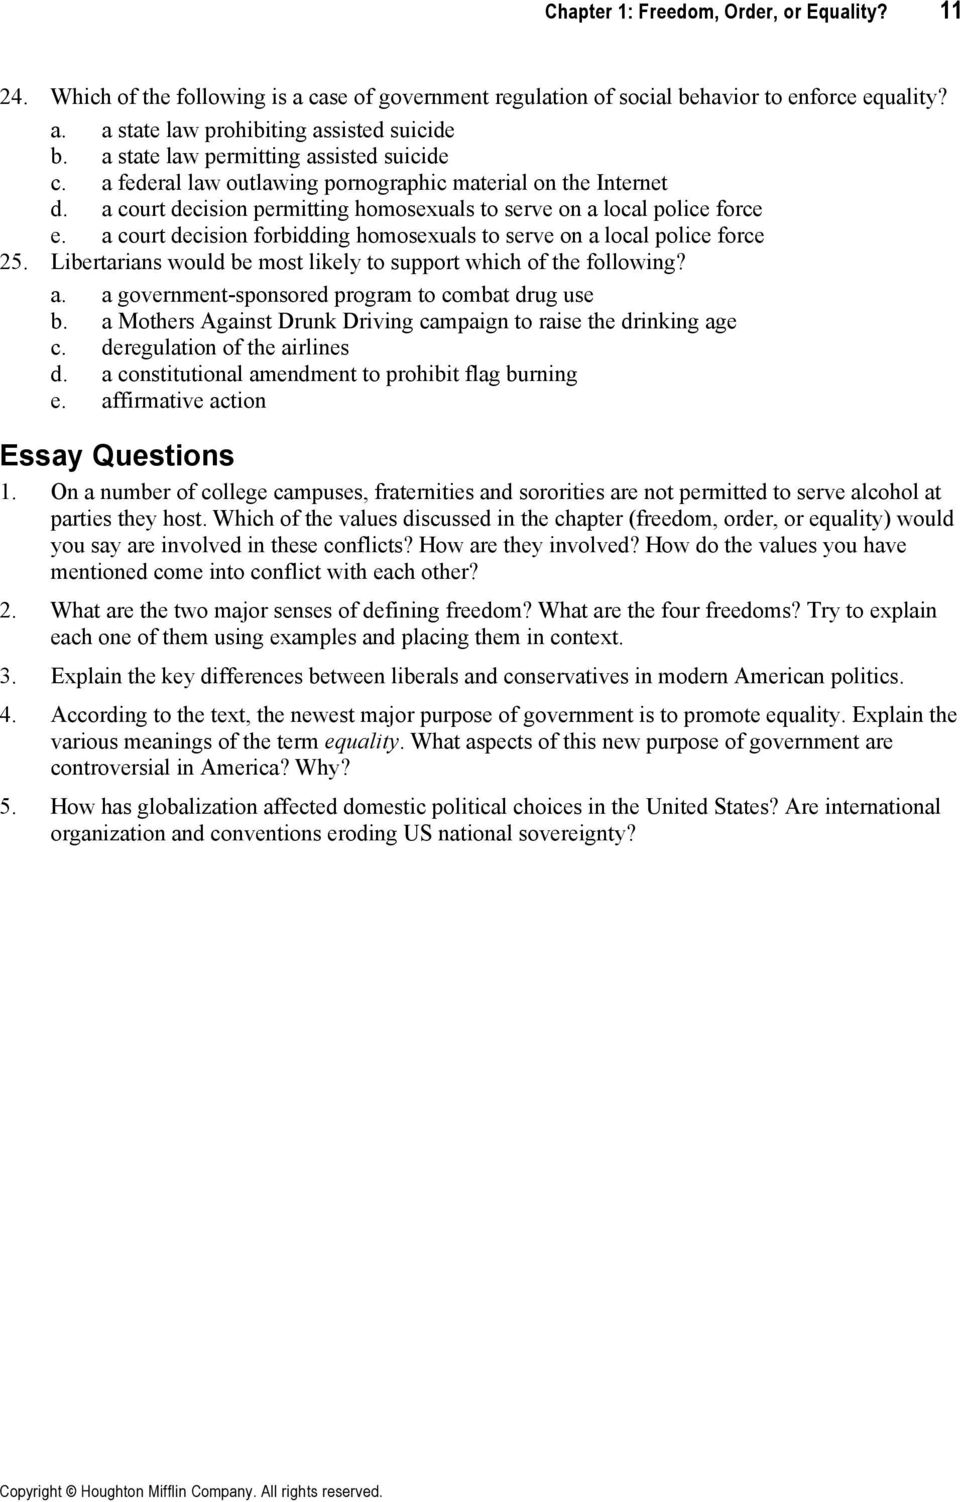 essay on affirmative action research paper on affirmative action  the challenge of democracy pdf a court decision forbidding homosexuals to serve on a local police research paper on affirmative action